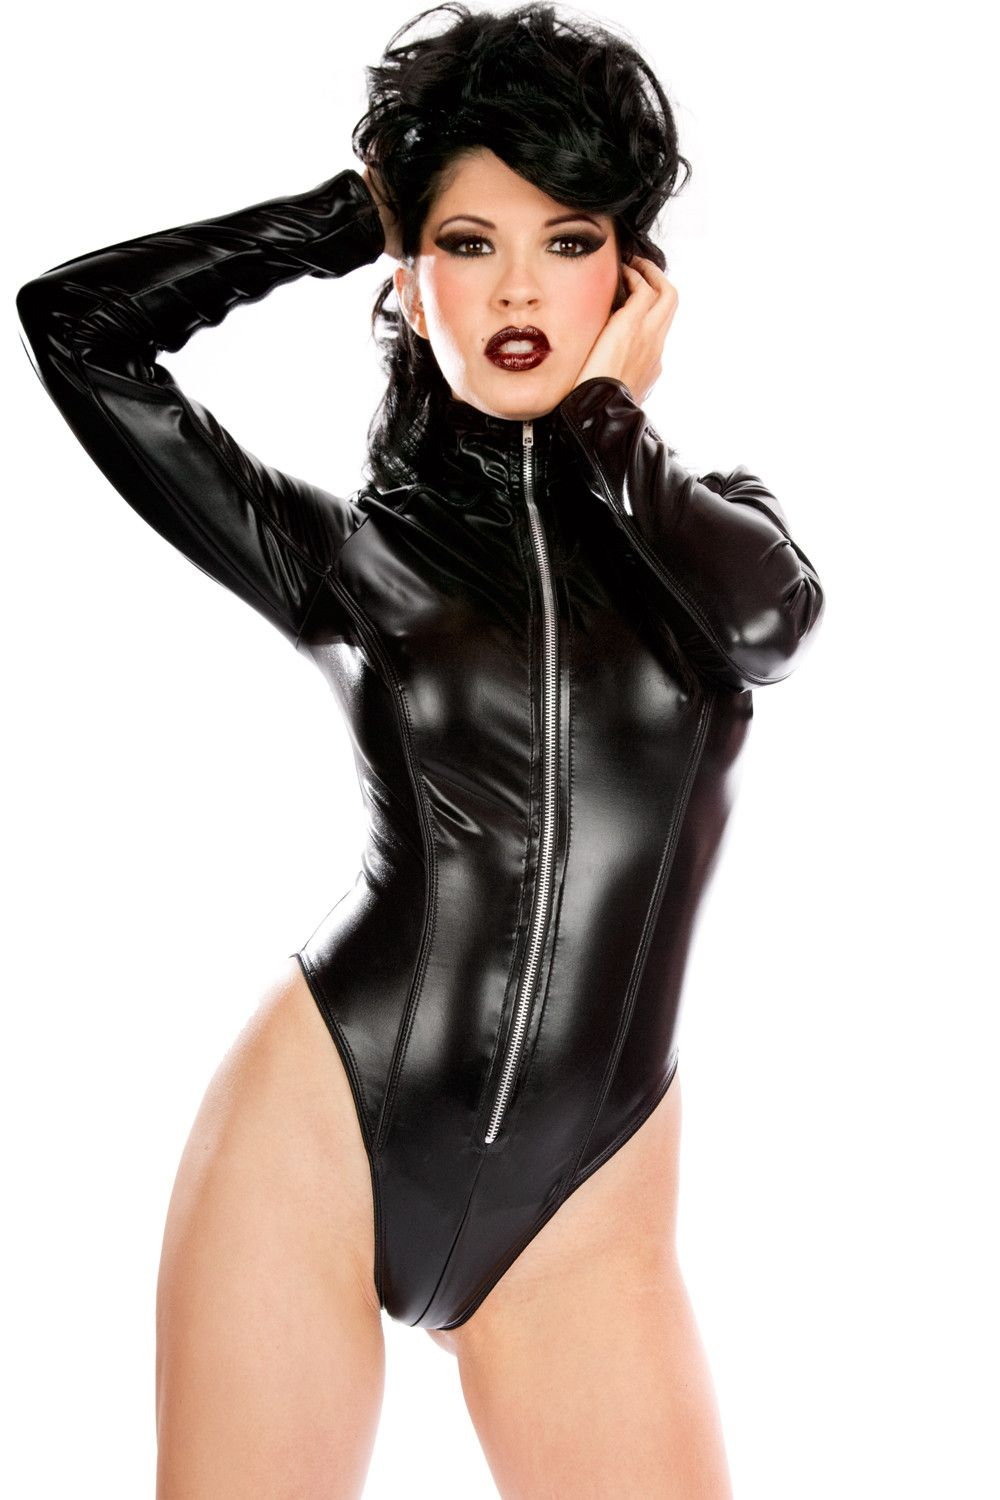 15eaf905c569 ... The Toxic High Collar Teddy is a long sleeved one-piece liquid metal  spandex creation with high cut sides, a high collar, and a zipper along the  front.